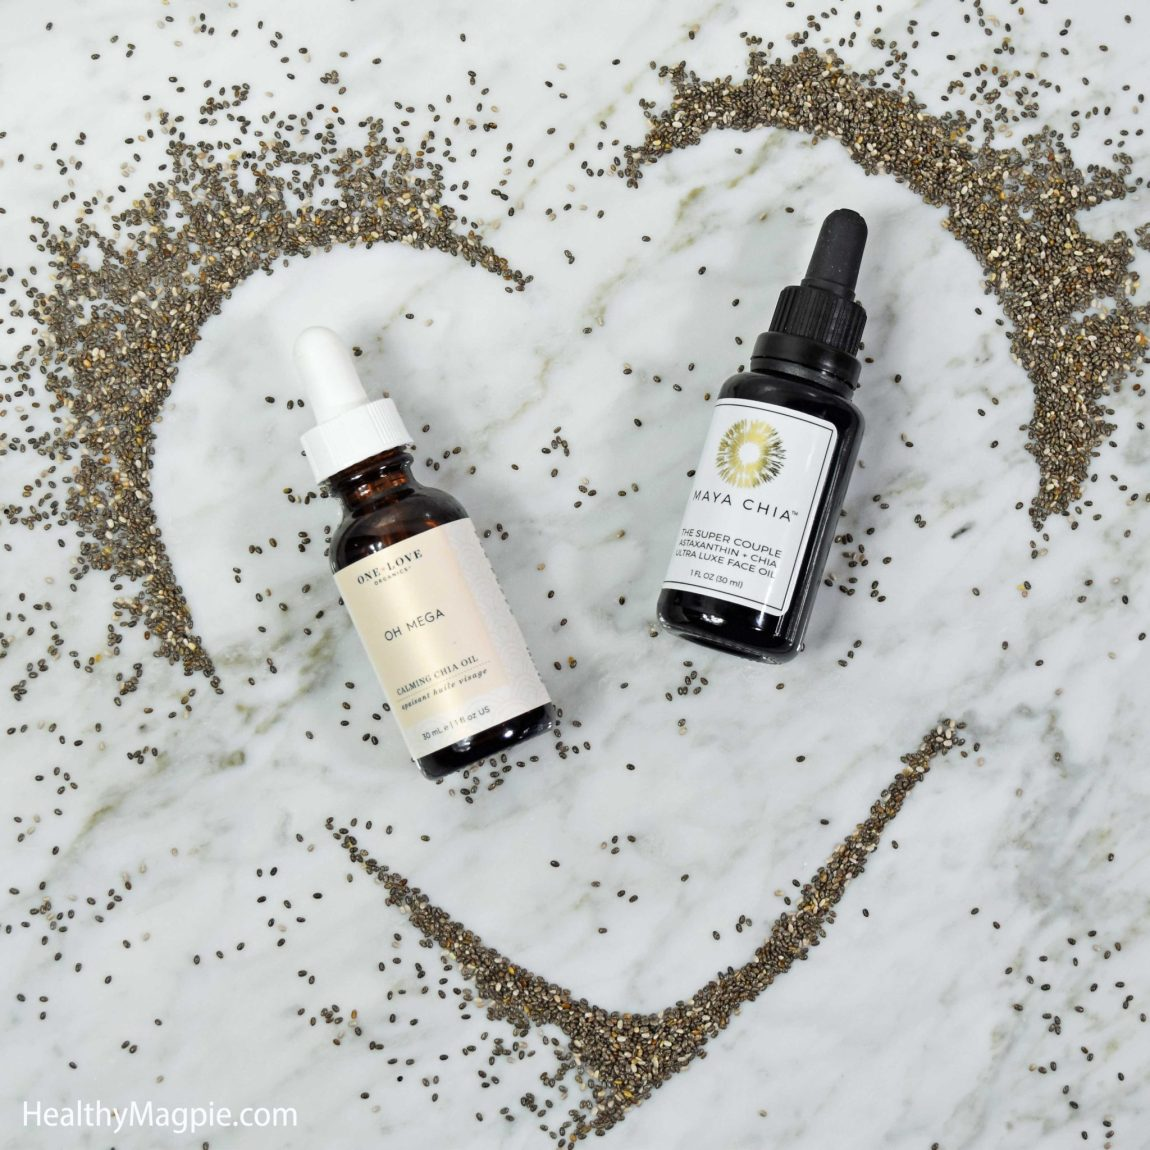 Picture and reviews of Maya Chia The Super Couple Astaxanthin + Chia Luxe Face Oil and One Love Organics Oh Mega Calming Chia Seed Face Oil